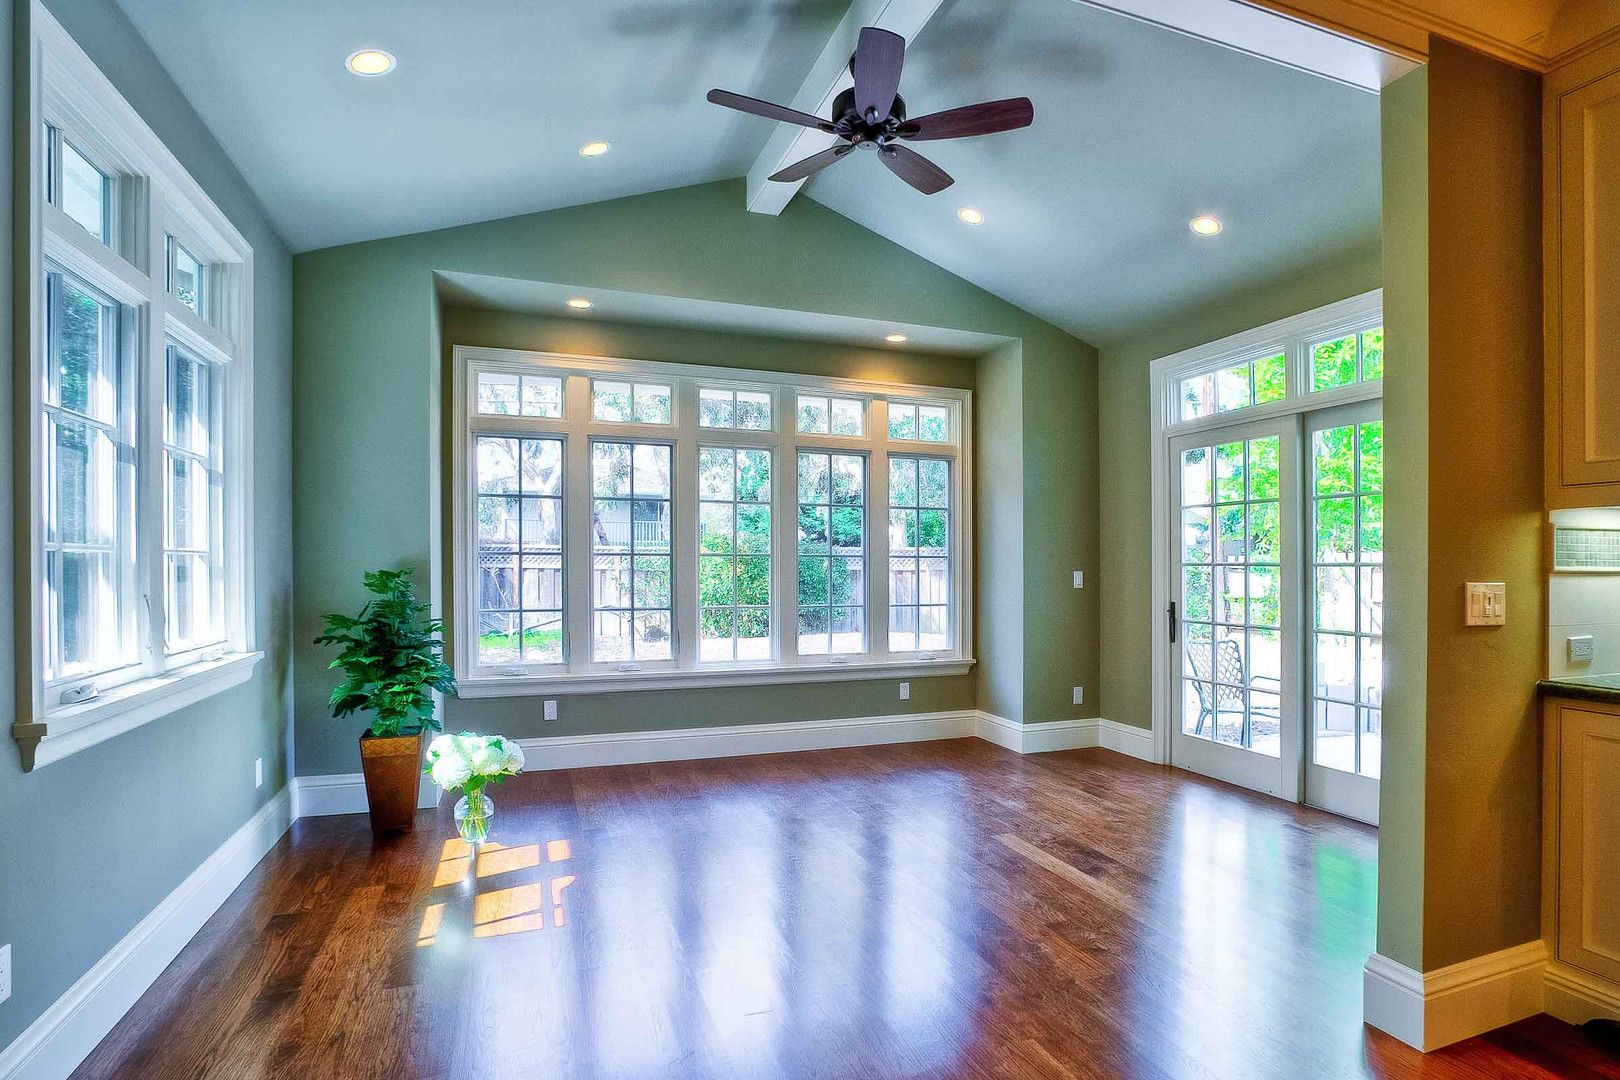 Transitional - East Creek - Family - 1 -